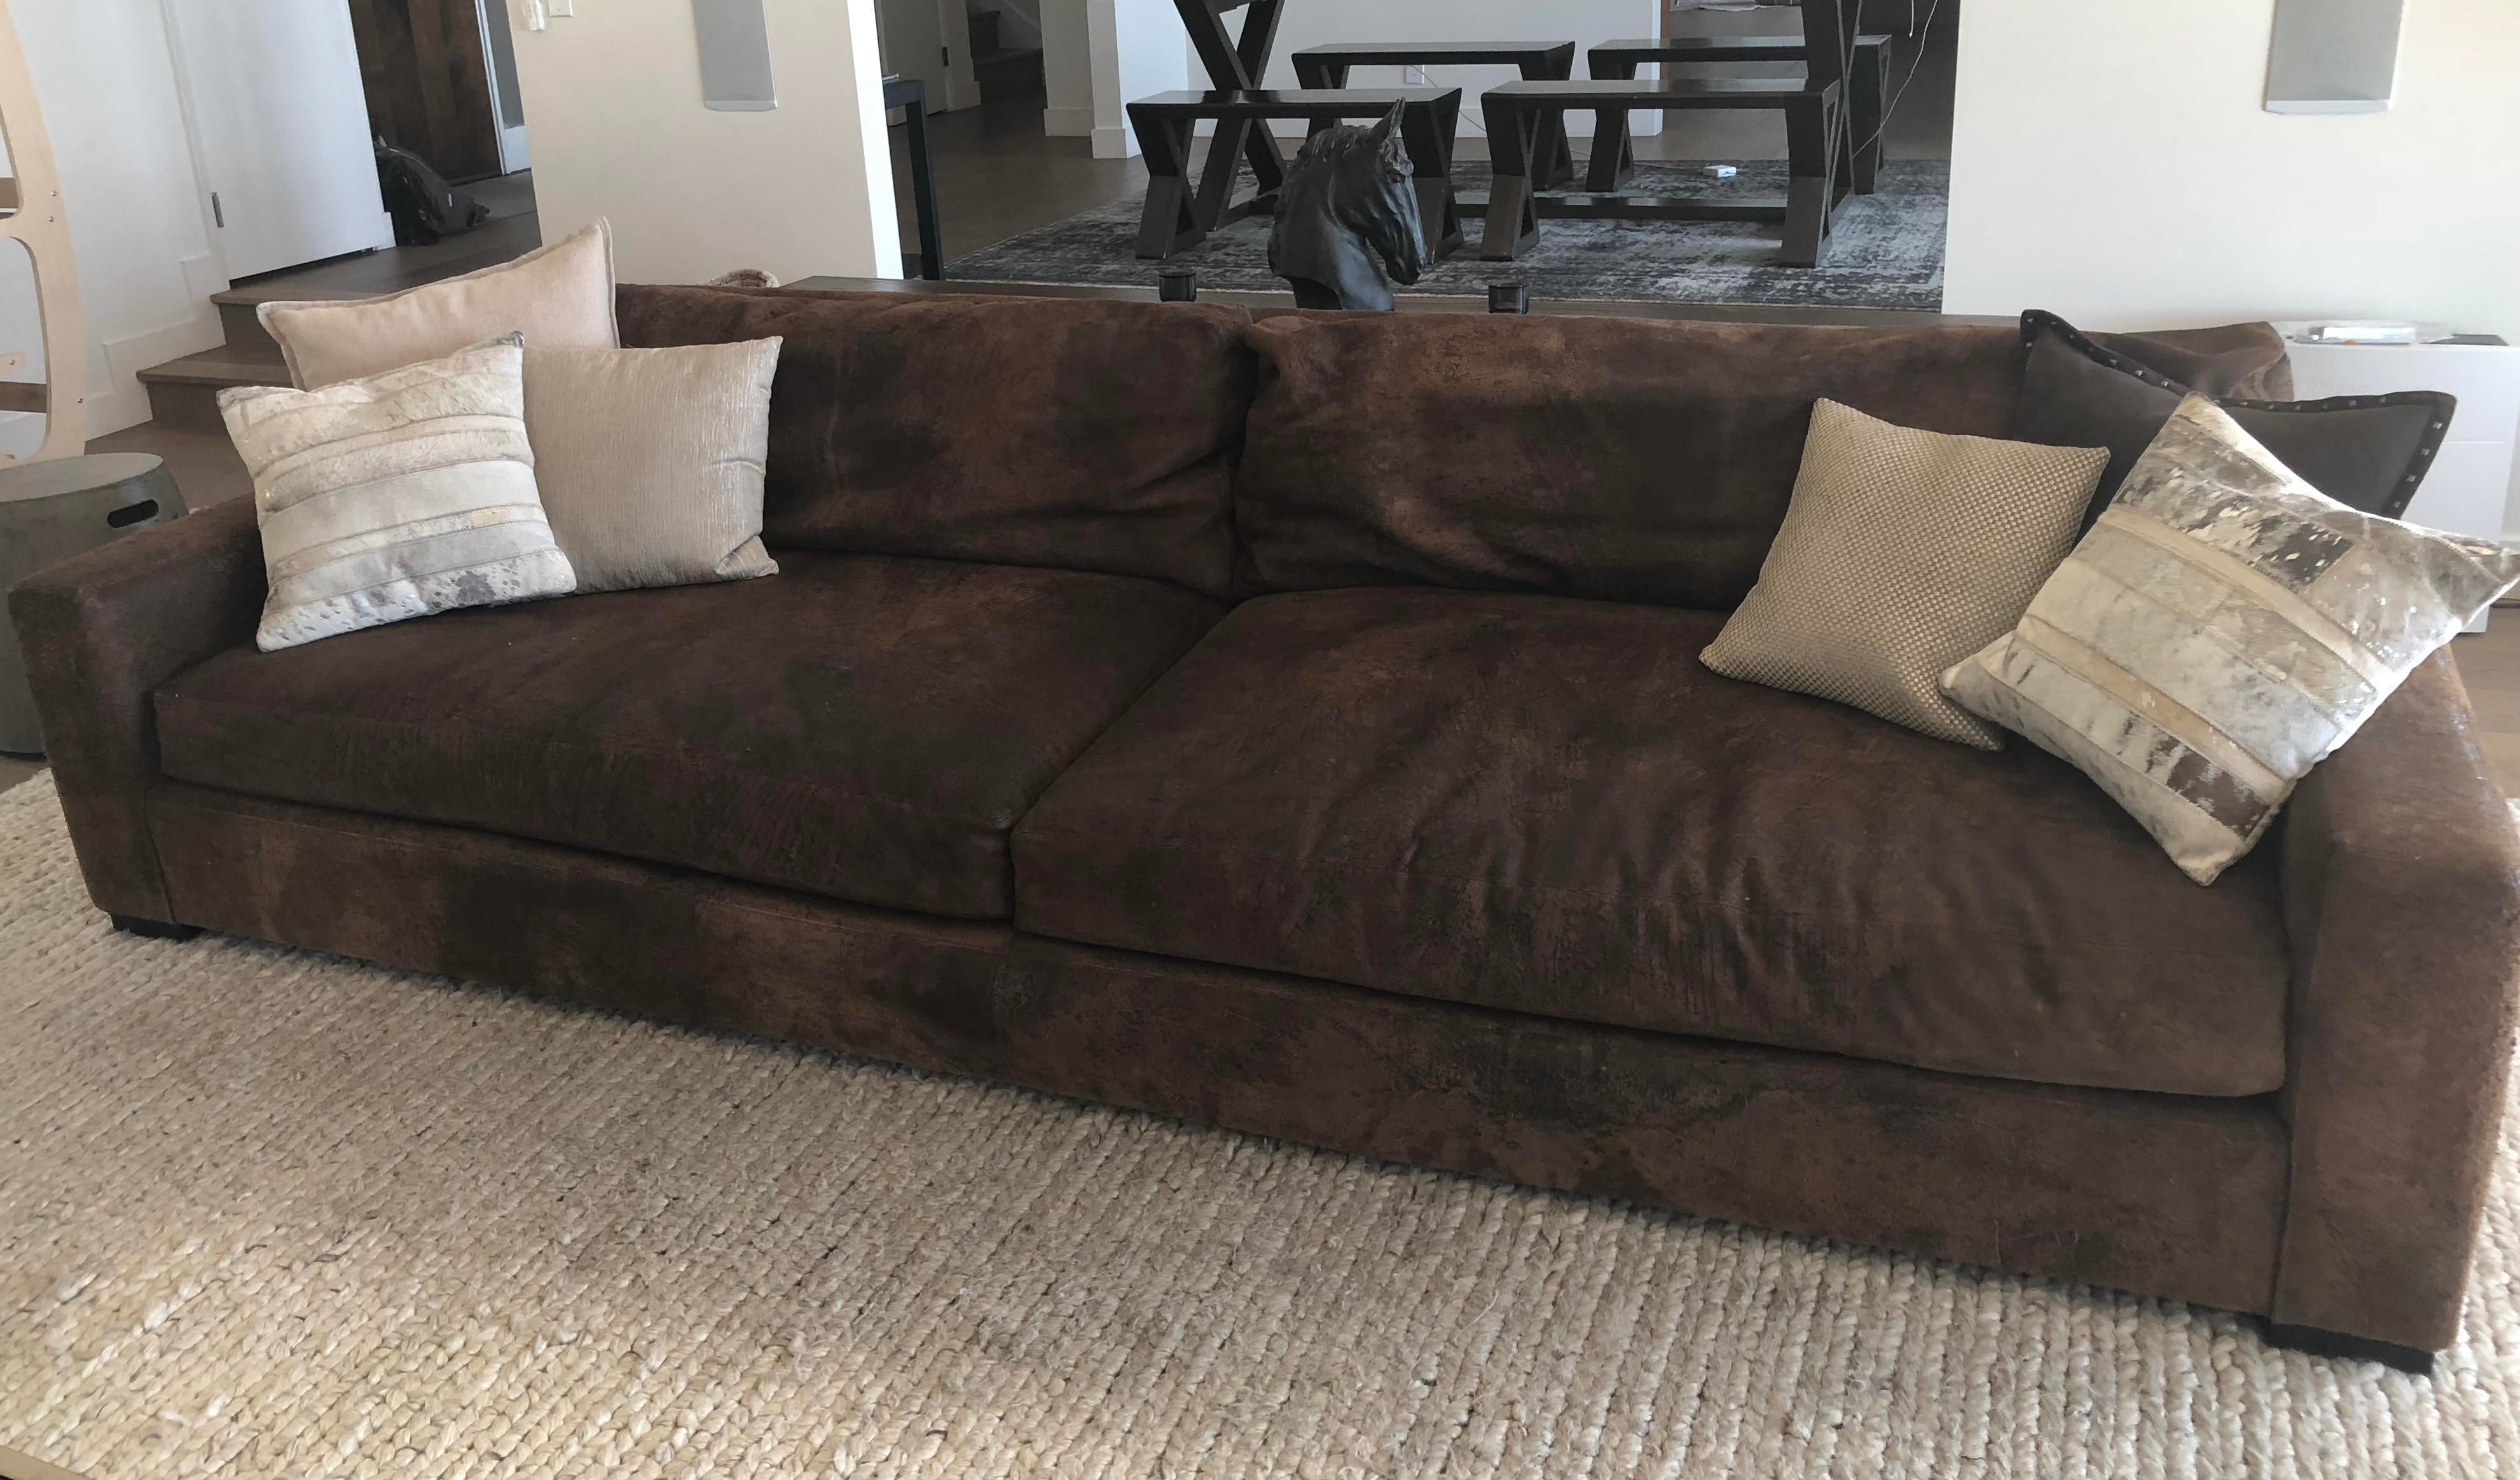 This Gorgeously Rugged Maxwell Sofa From Restoration Hardware Is  Upholstered In Espresso Colored Destroyed Leather